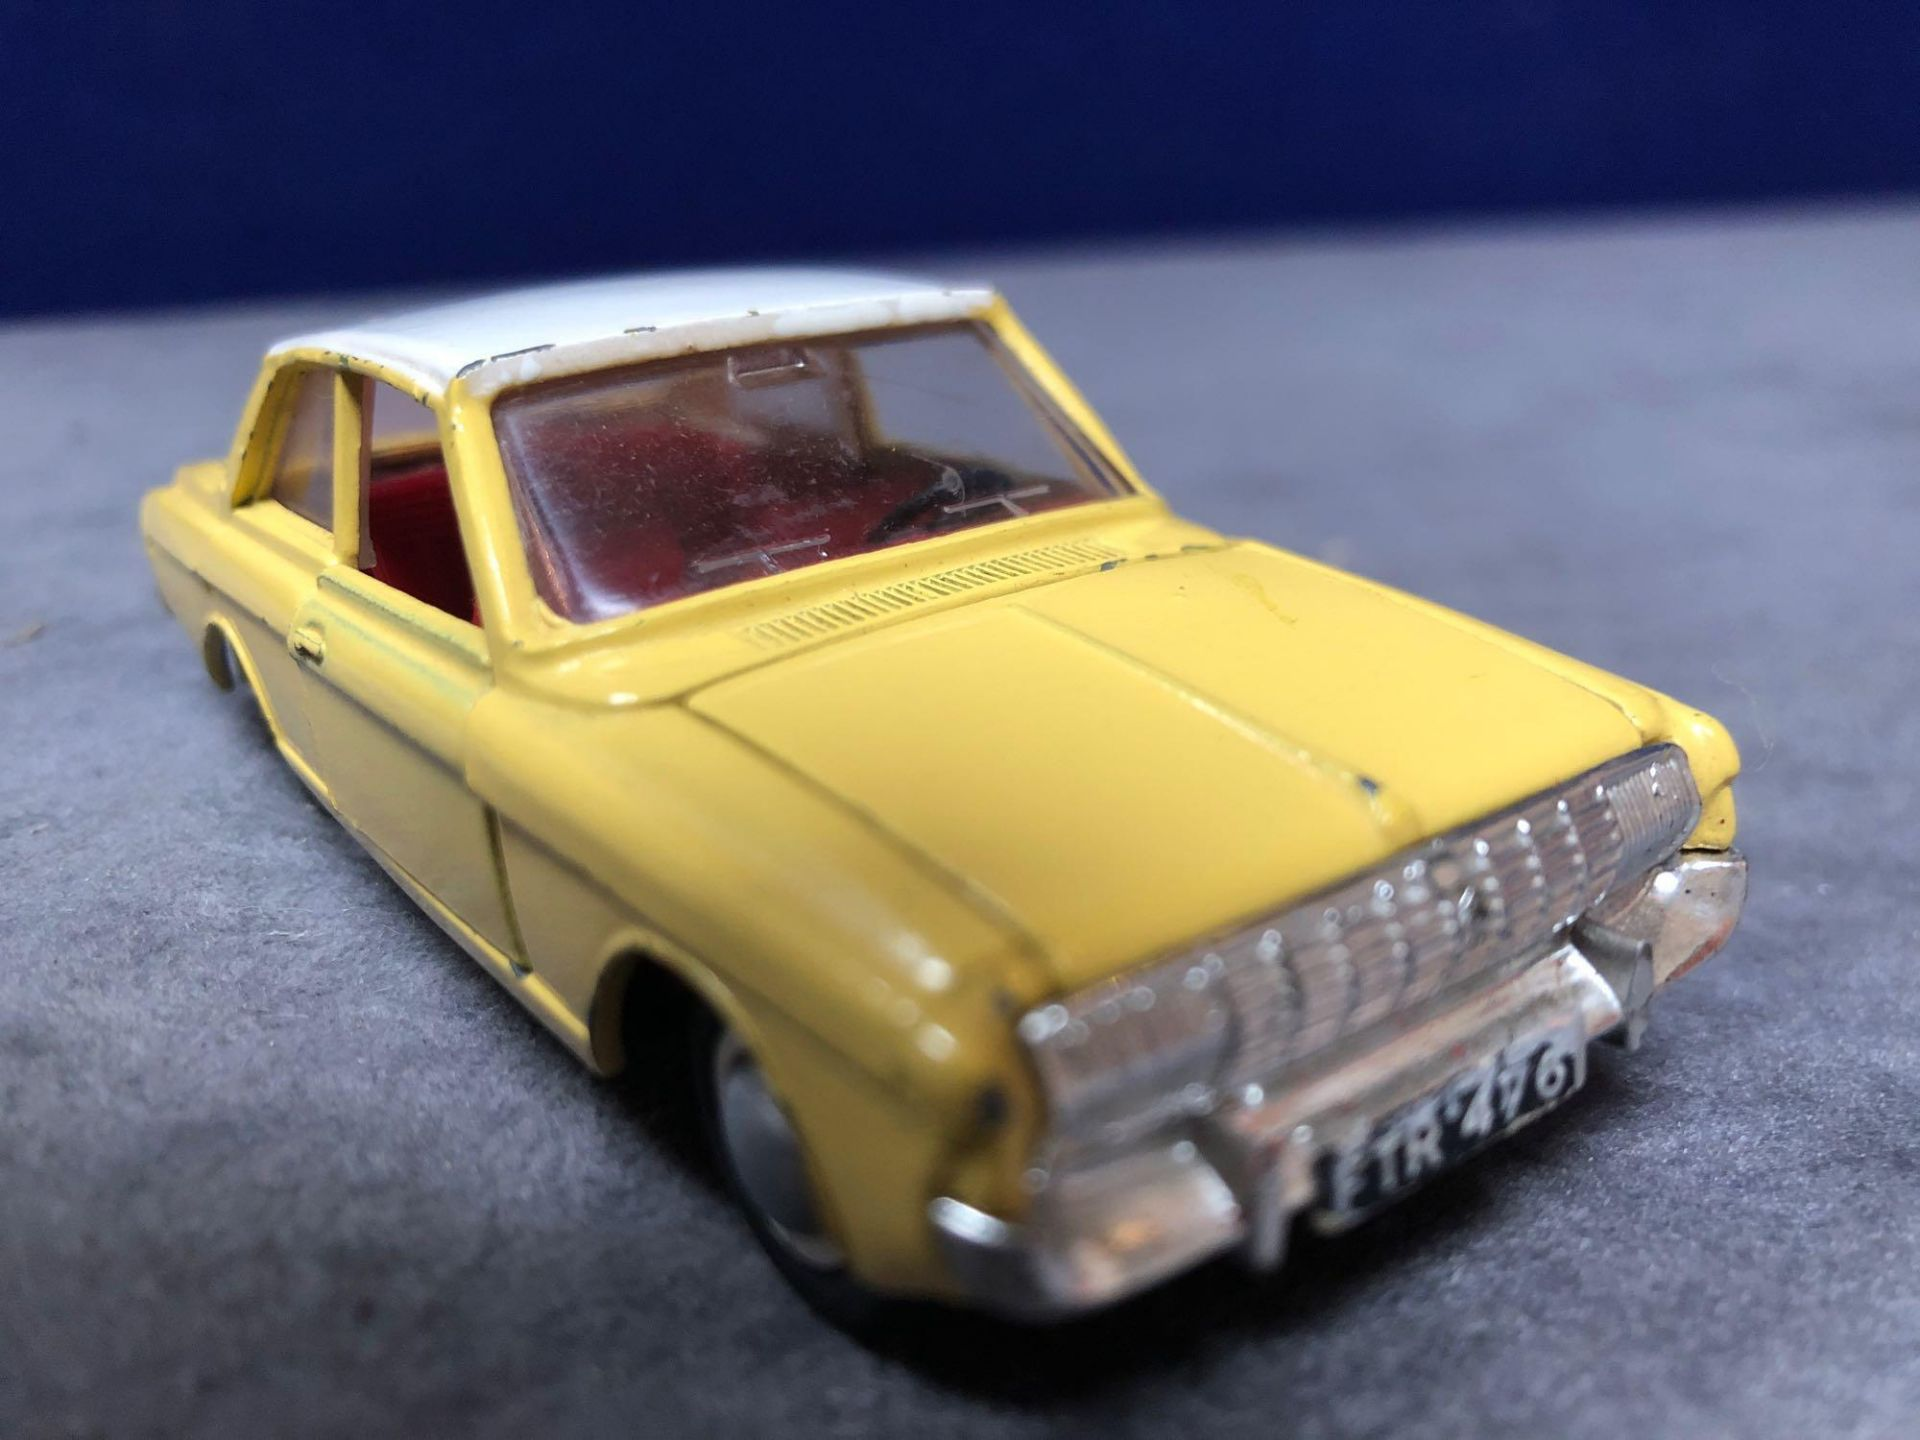 Dinky #154 Ford Taunus 17m Yellow/White - Red Interior 1966 - 1969 Unboxed very good condition - Image 2 of 4